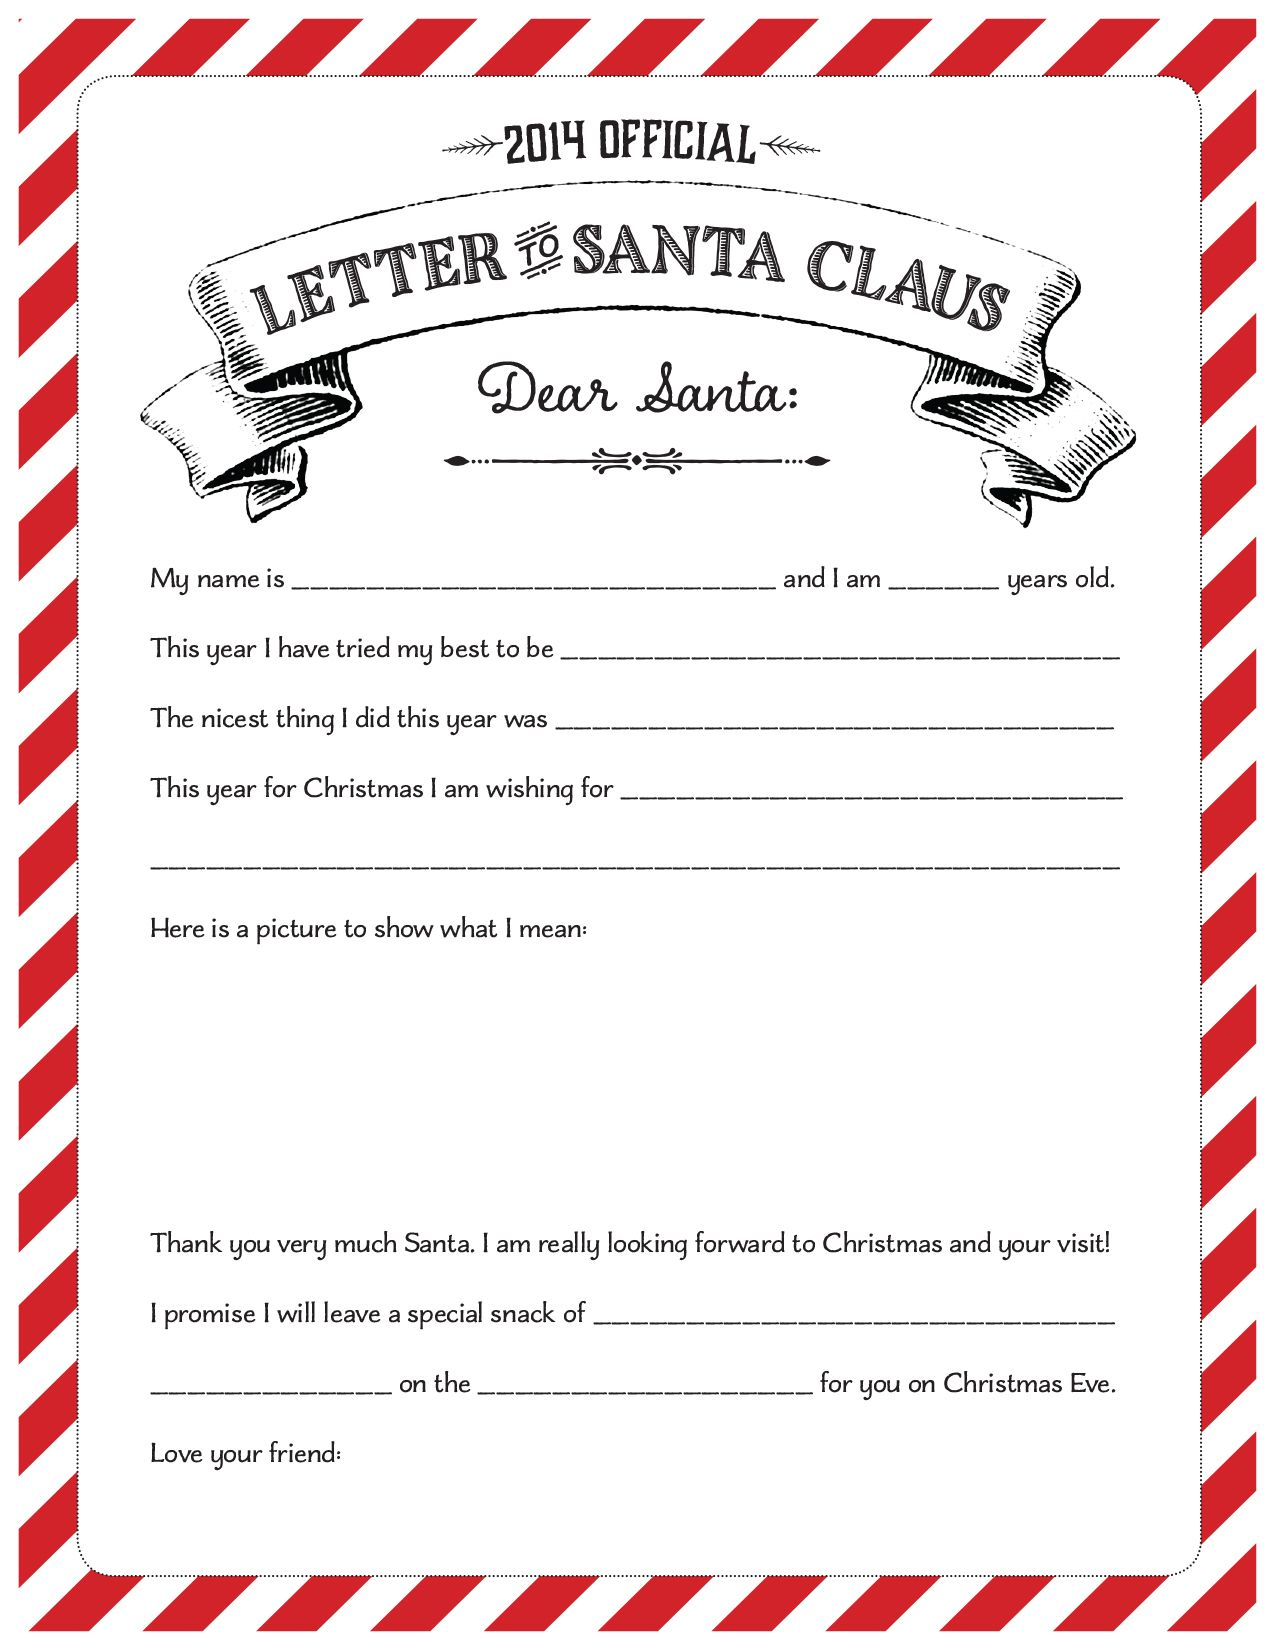 Free Printable Official Letter To Santa Claus With